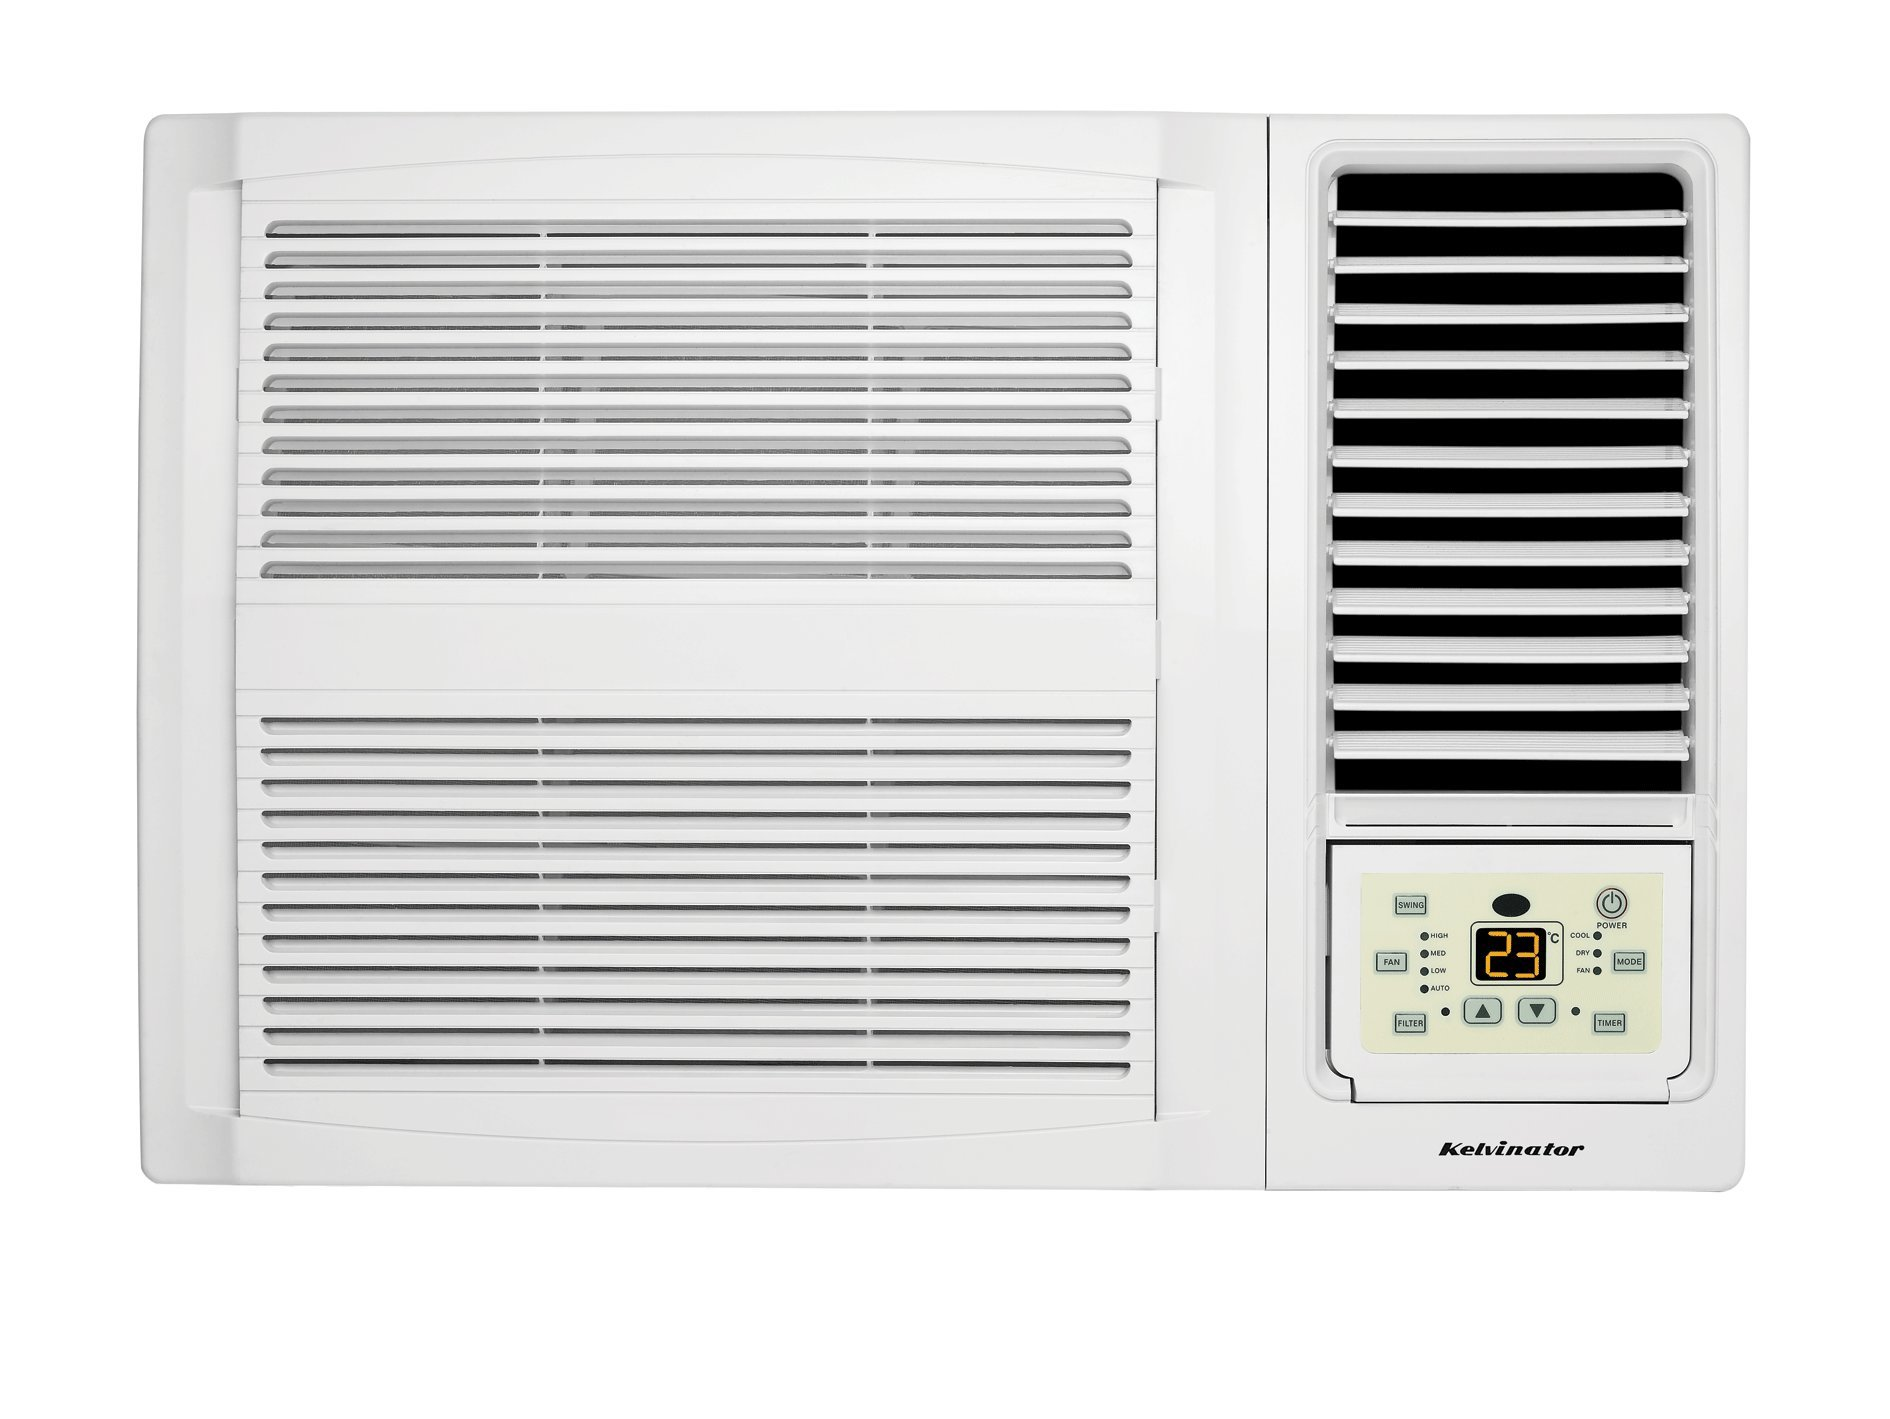 Kelvinator KWH20CRE 2.2kW Window Box Air Conditioner - FREE Delivery & Price Match* image